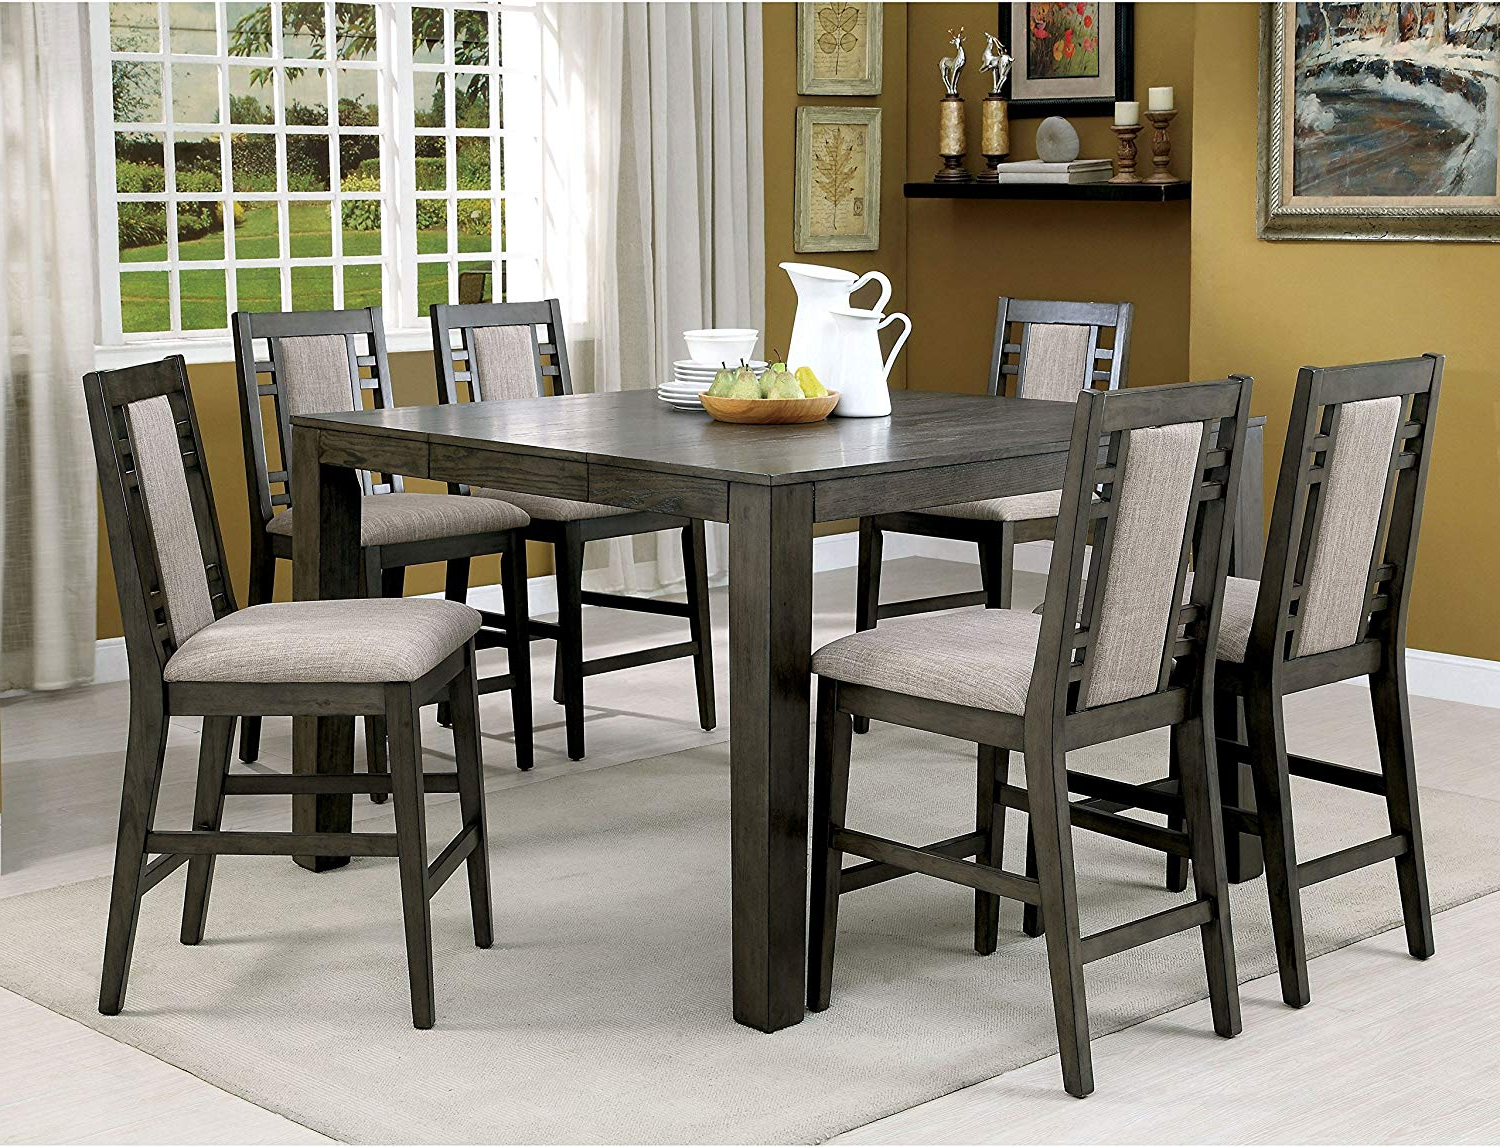 2019 Transitional Driftwood Casual Dining Tables Intended For Amazon: Rustic Weathered Grey 7 Piece Counter Height (View 6 of 25)